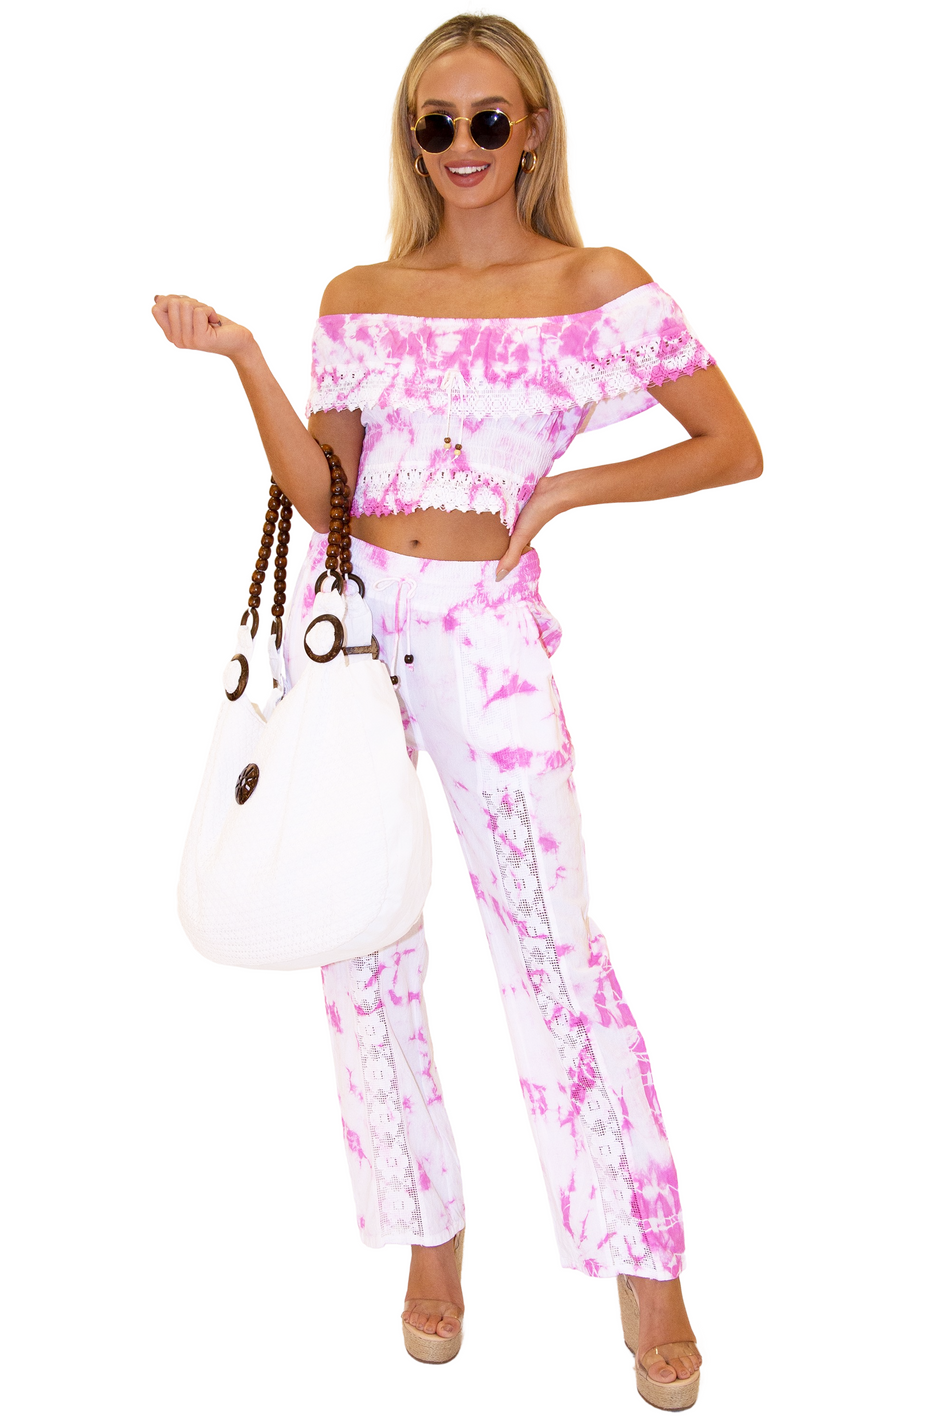 NW1175 - Tie Dye Pink Cotton Pants